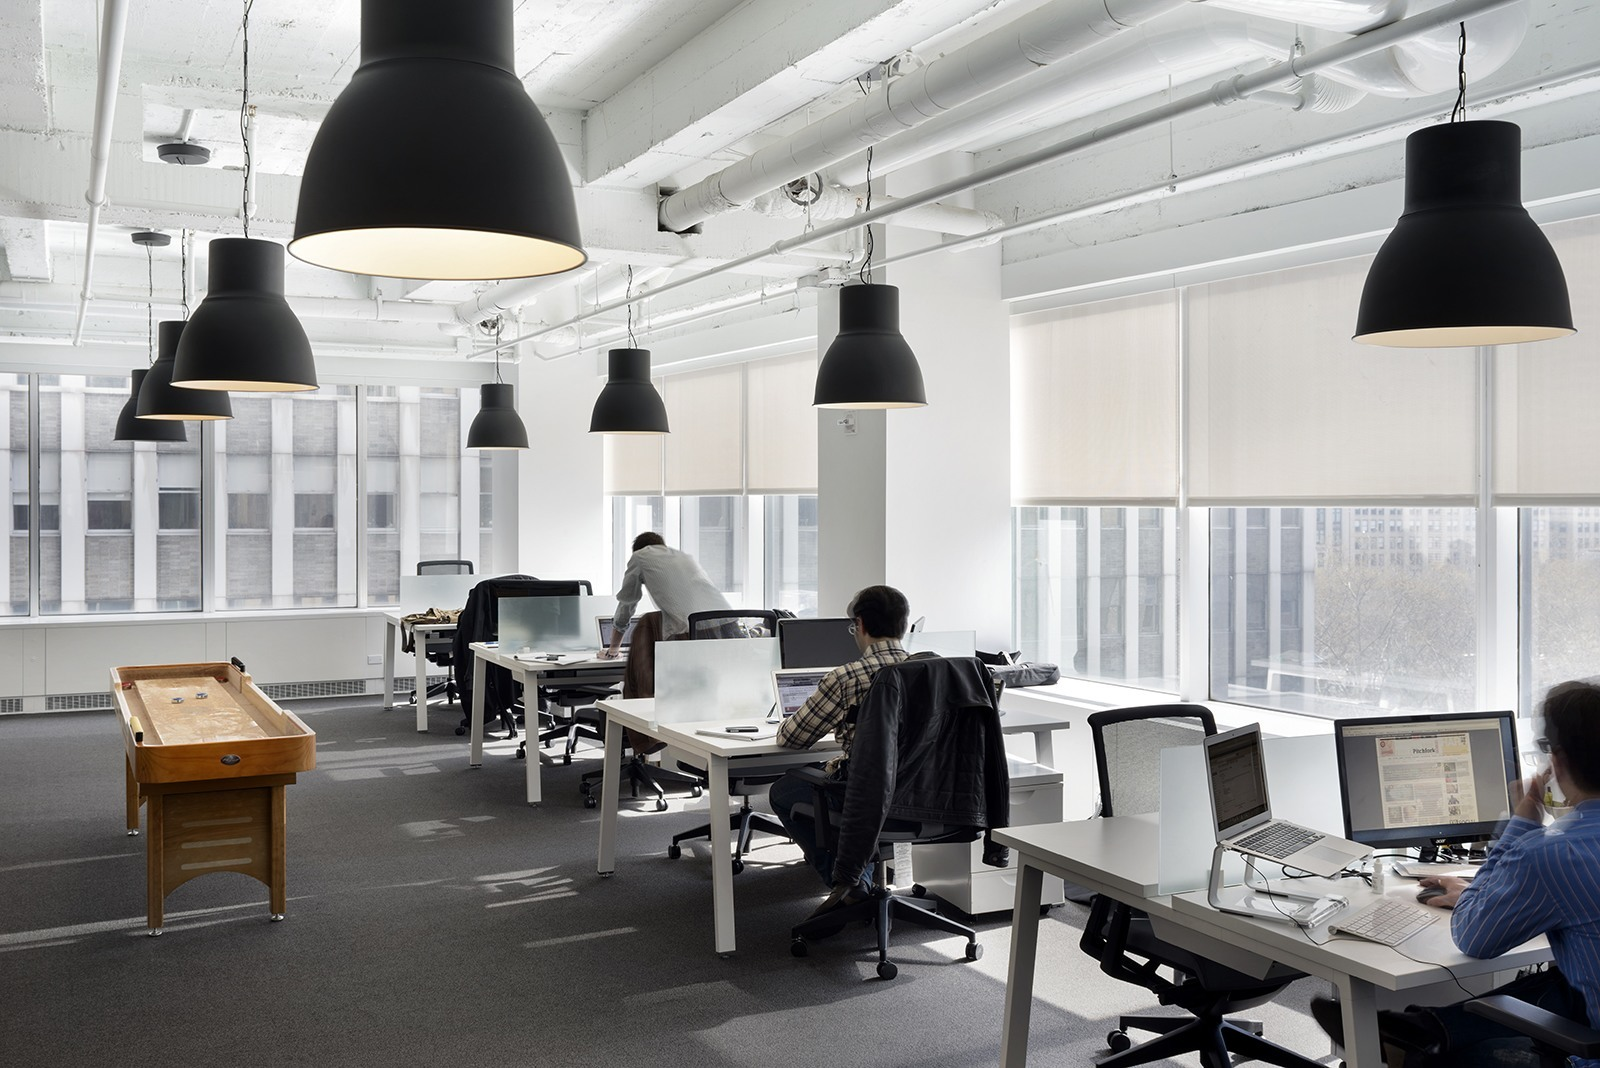 a look inside vox media s elegant new york city office officelovin 39. Black Bedroom Furniture Sets. Home Design Ideas